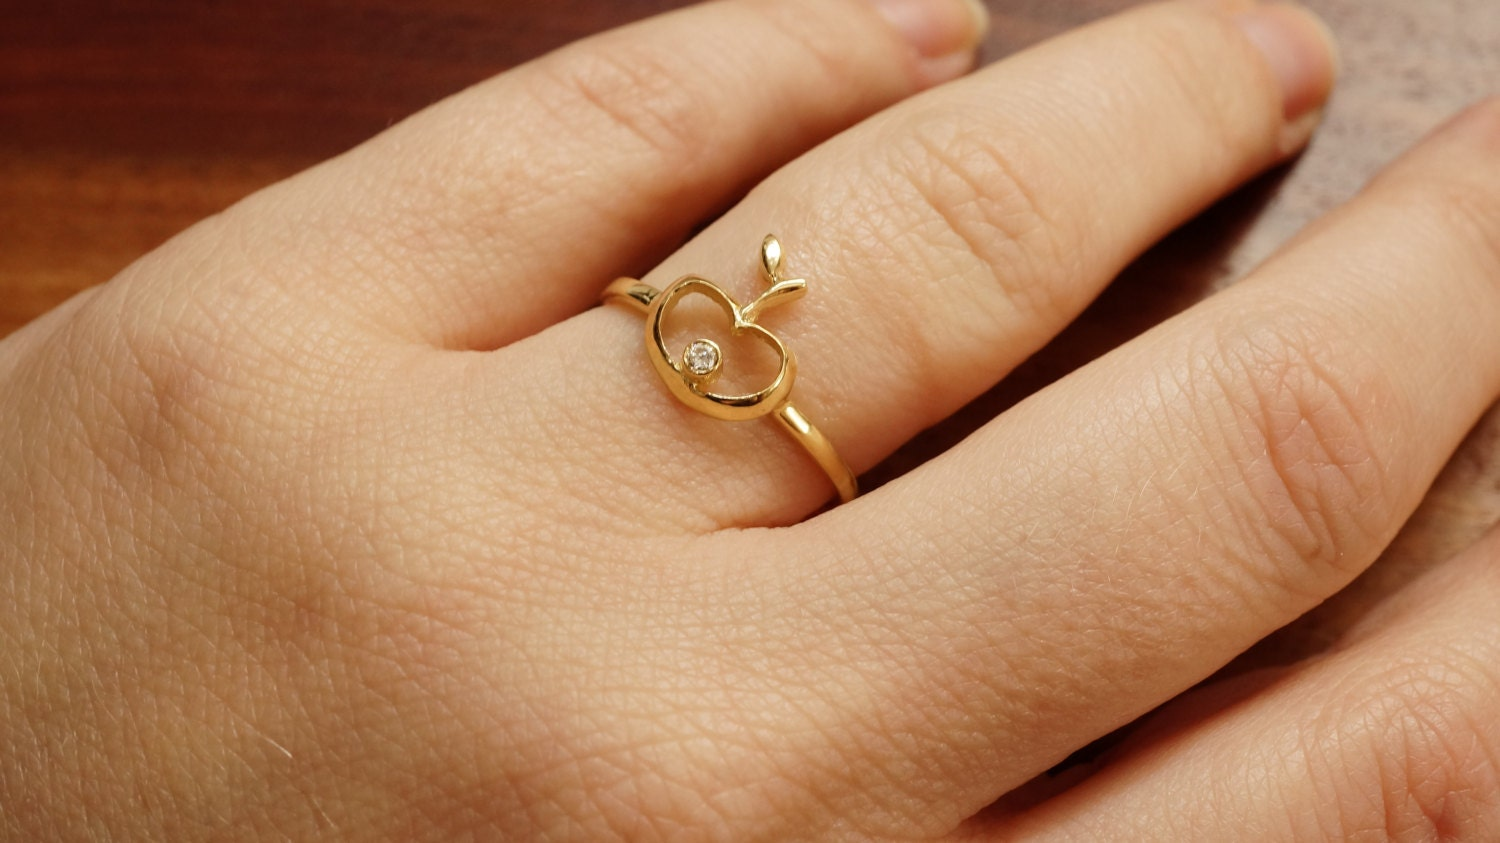 filigree rings ring band gold sale media express women wedding shipping unique yellow bands